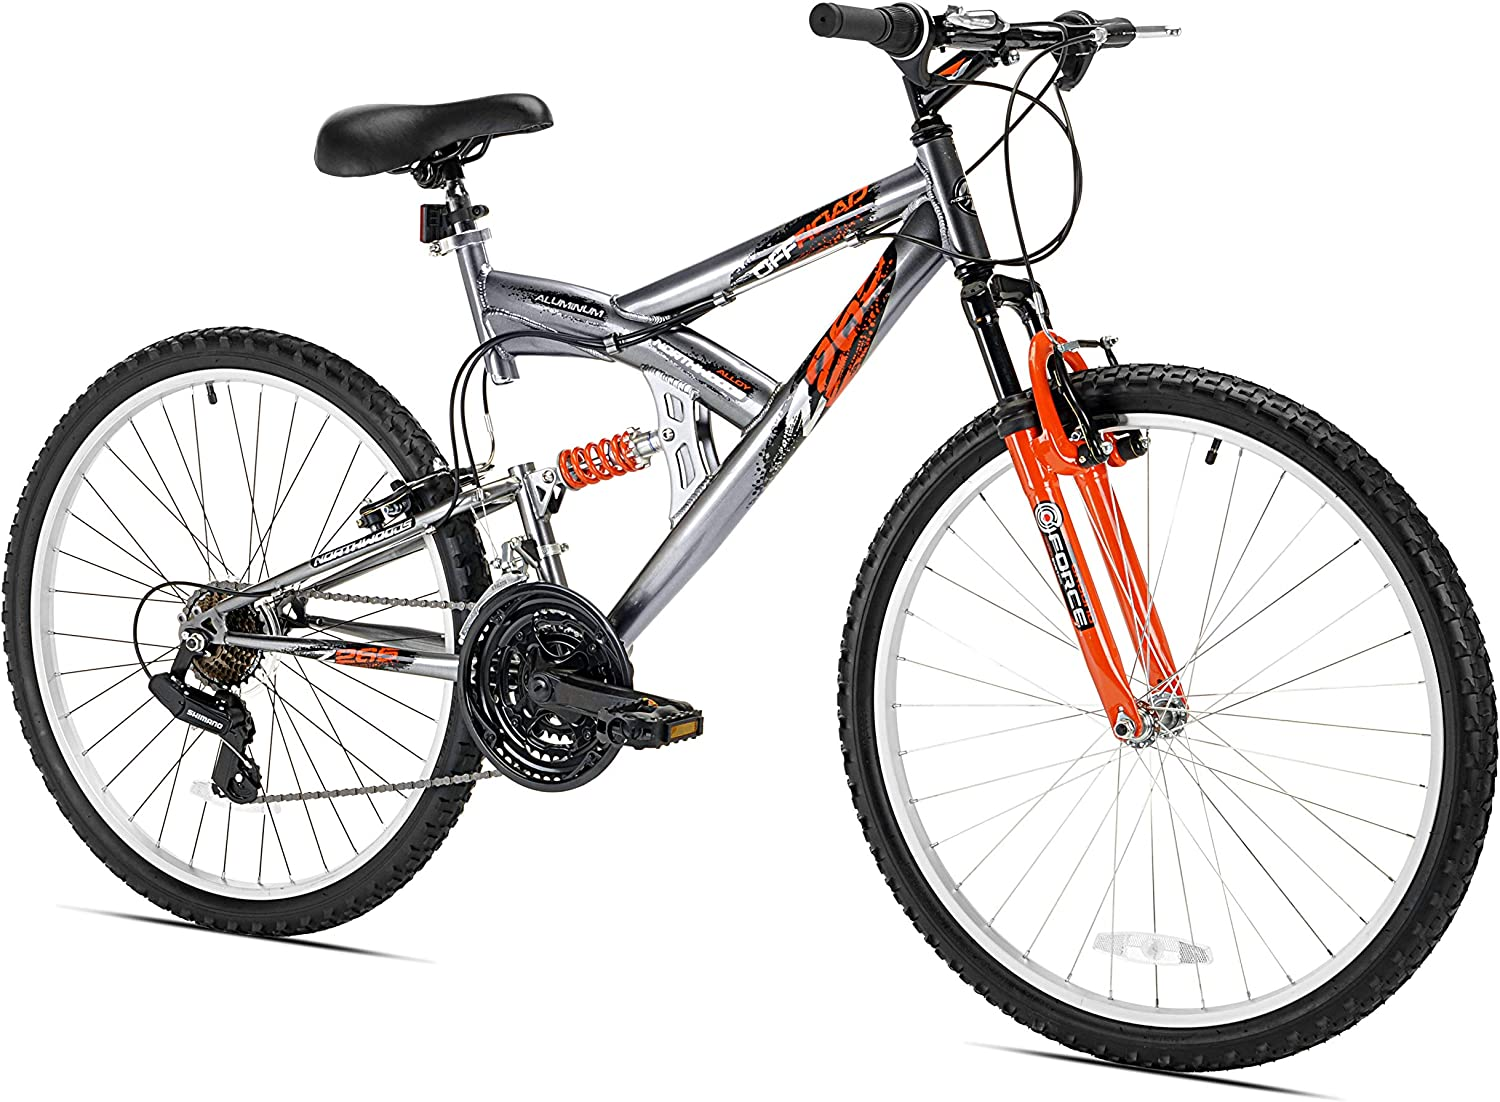 best mountain bike under 500: Northwoods Aluminum Full Suspension Mountain Bike